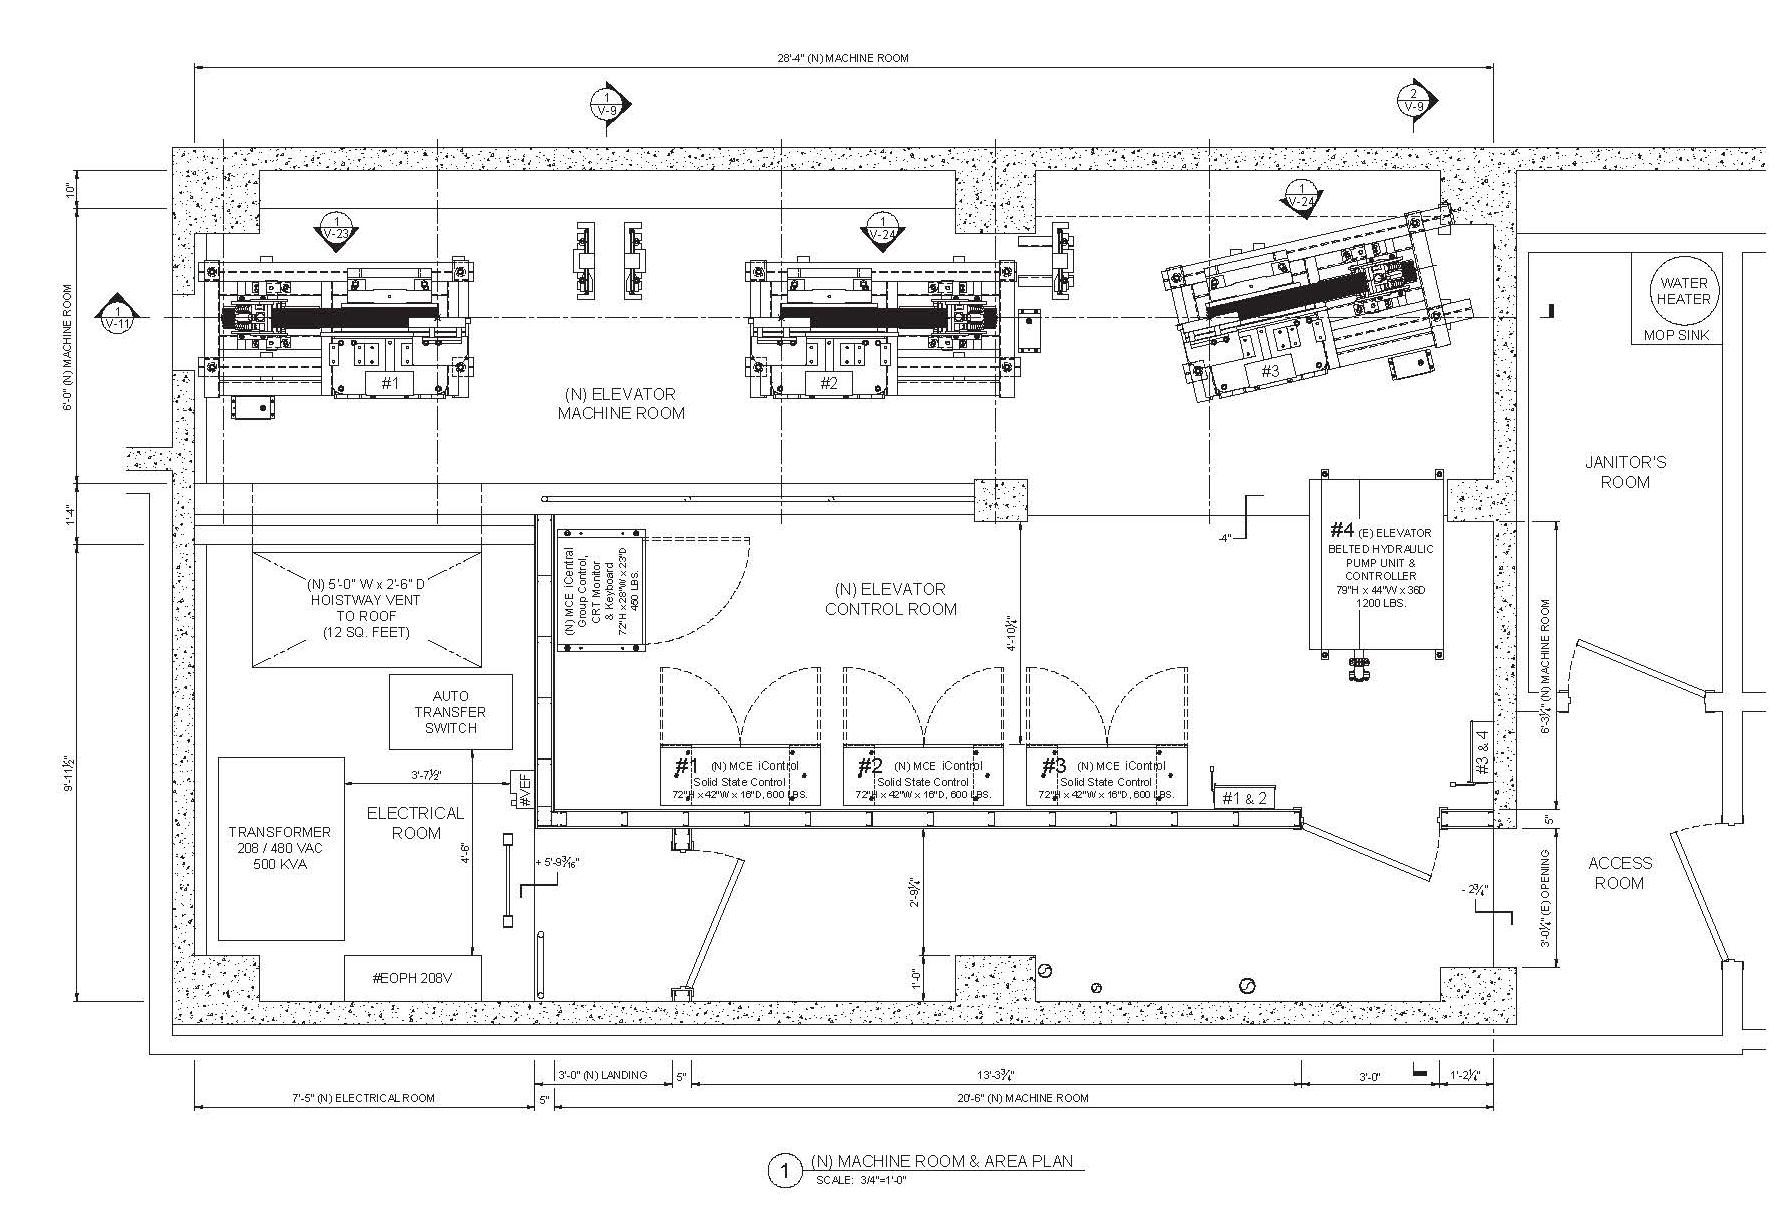 Design drawings by Rich Blaska of RCB Elevator Consulting, LLC.